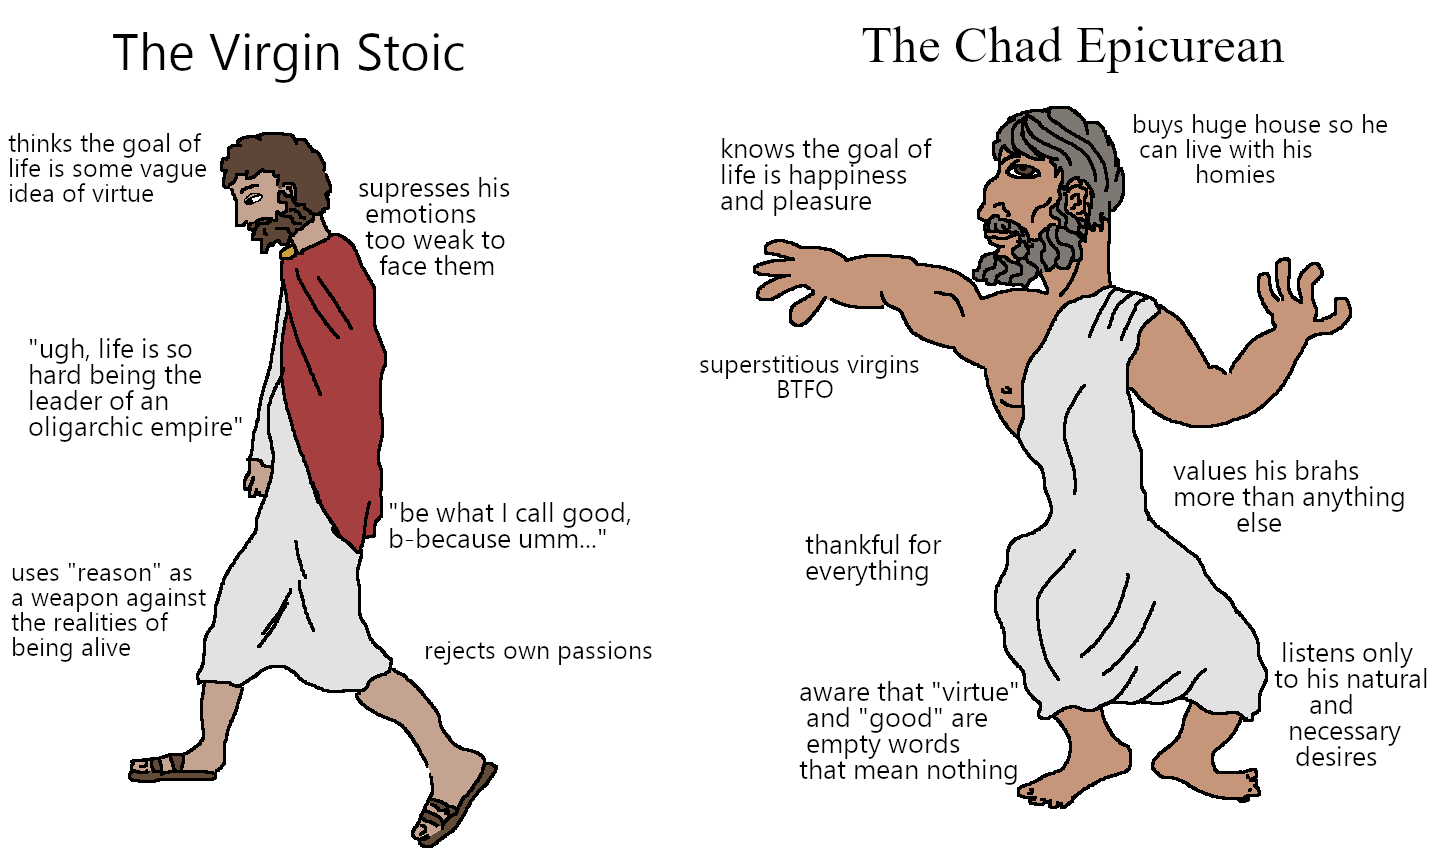 Virgin Stoic vs Chad Epicurean